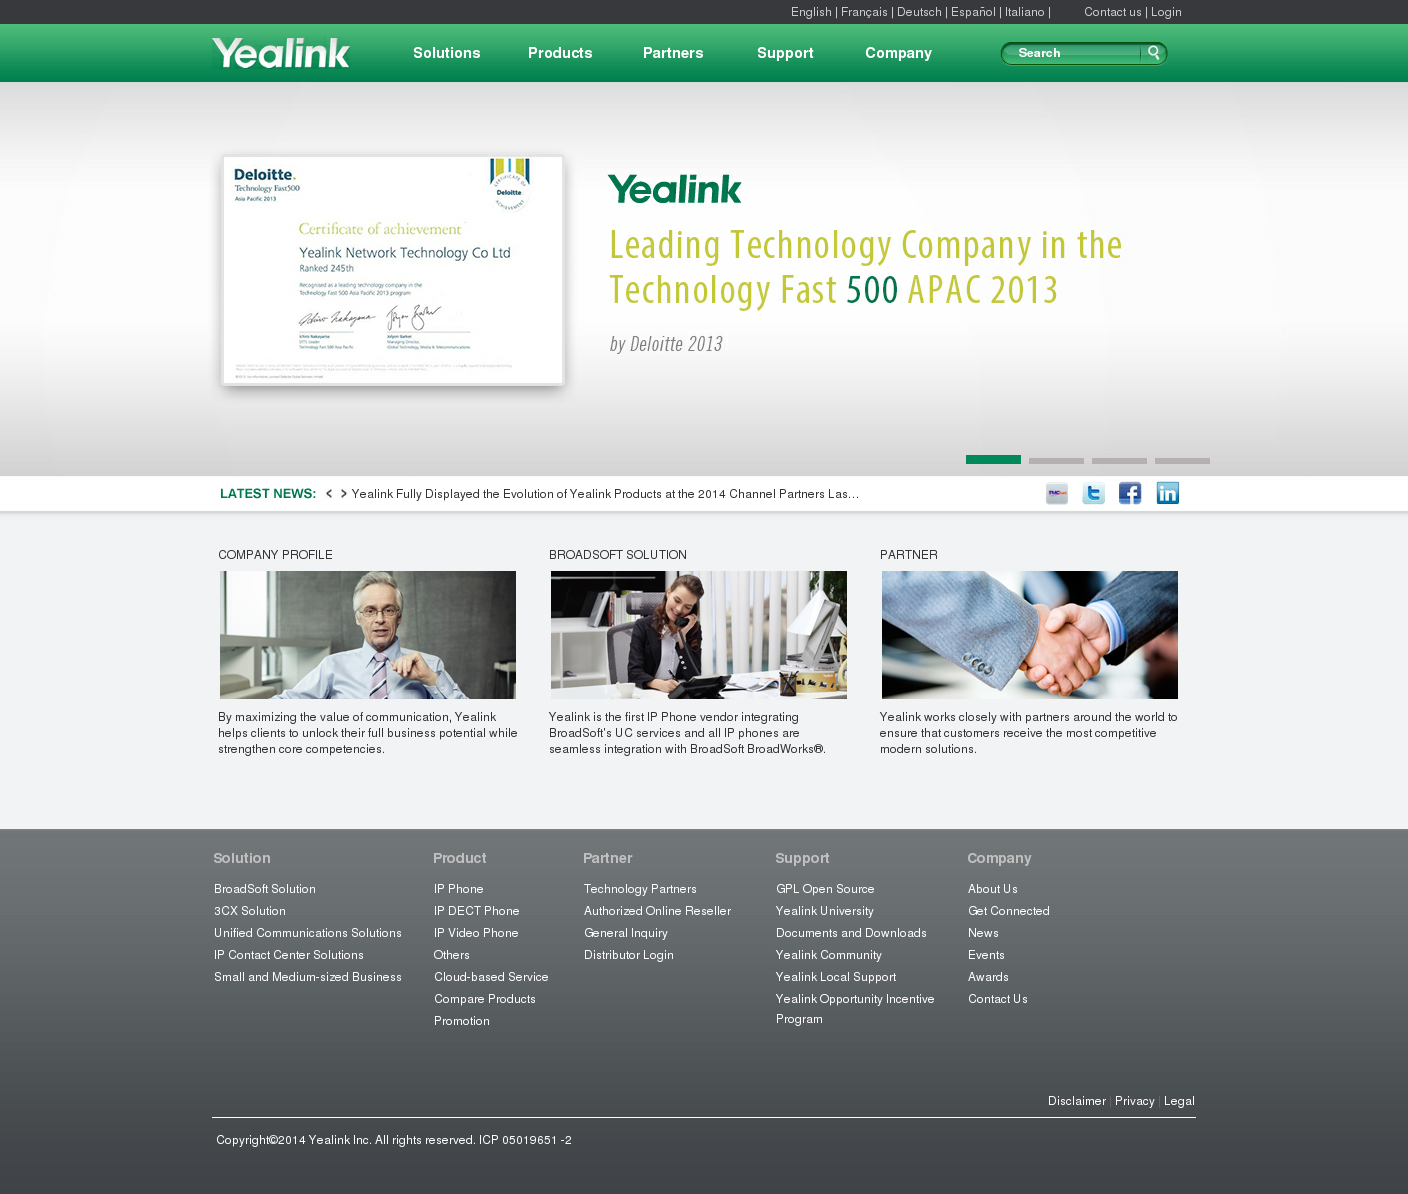 Yealink Competitors, Revenue and Employees - Owler Company